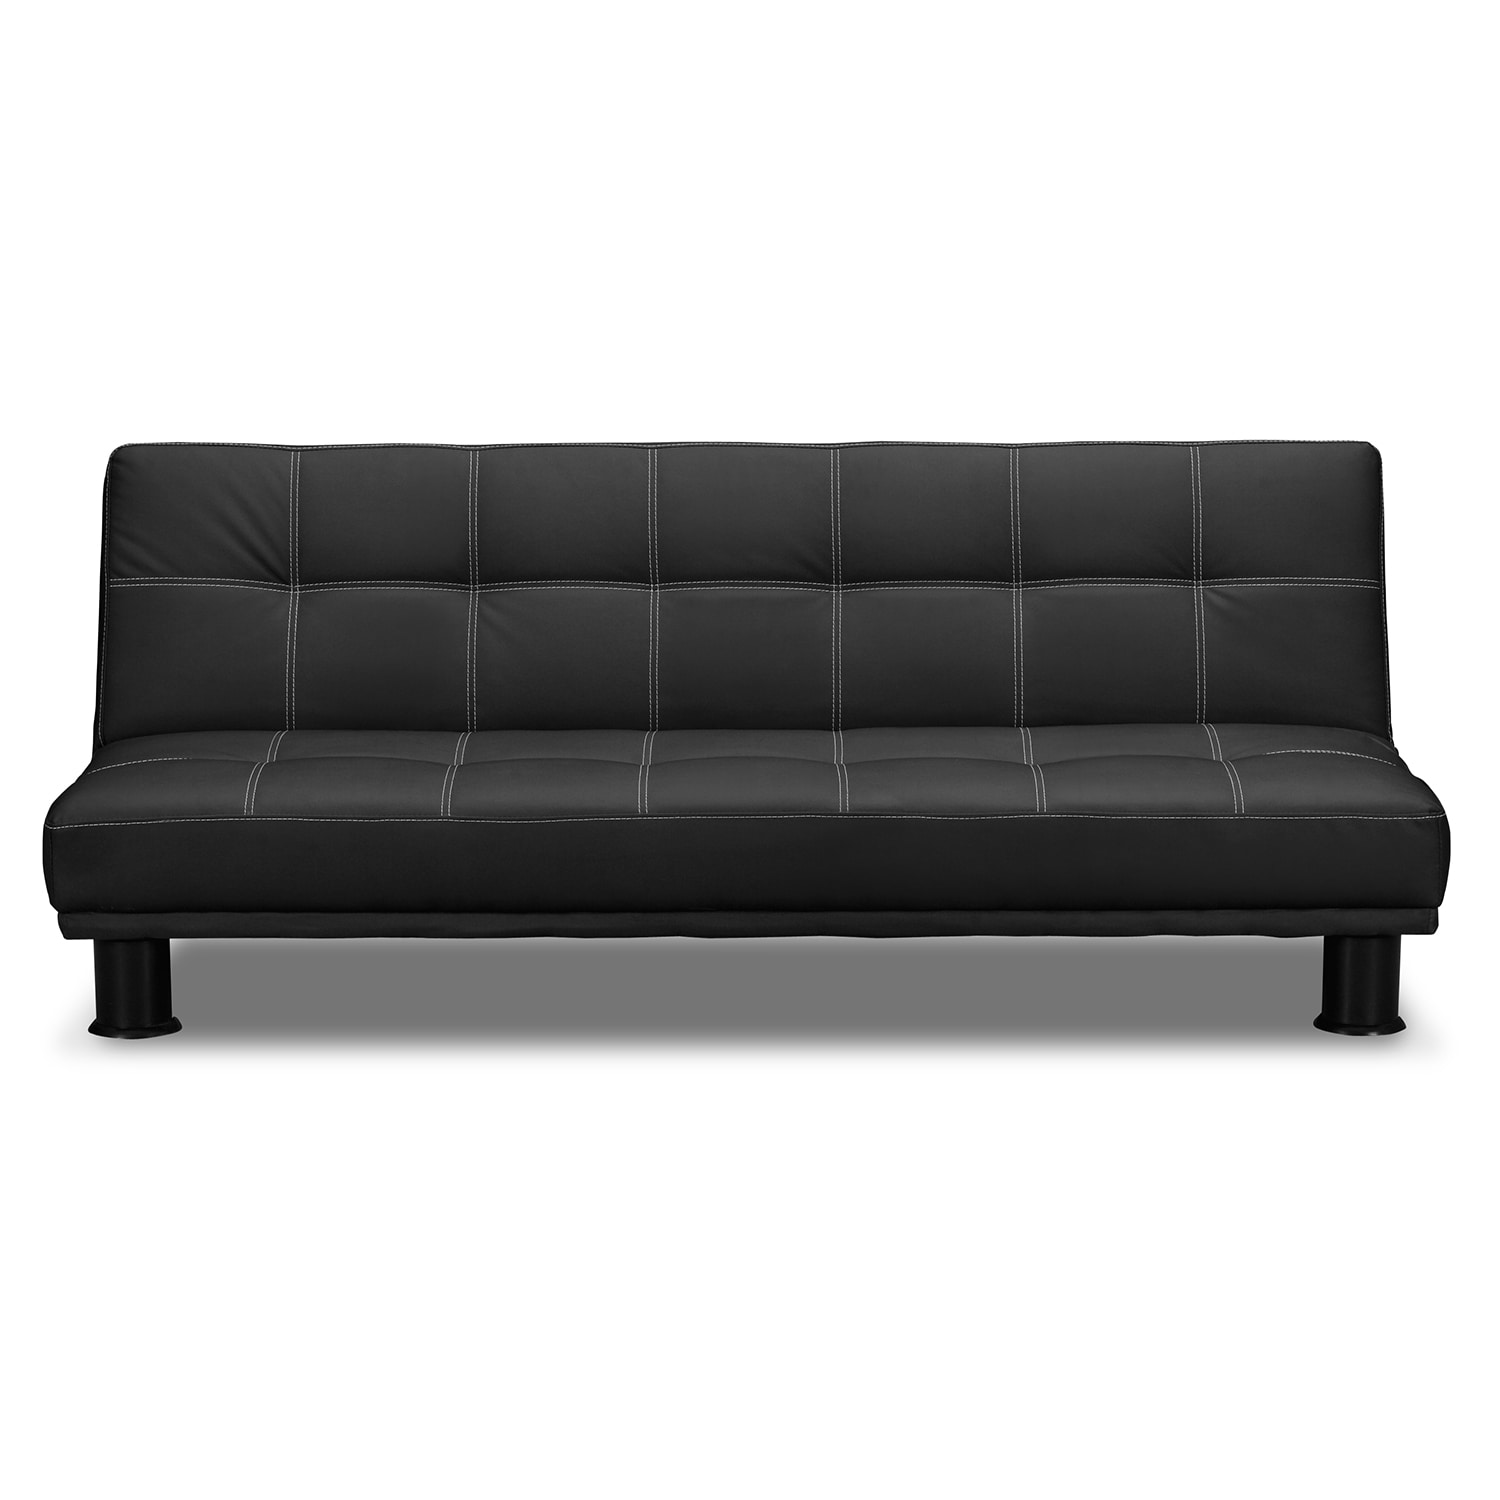 Phyllo futon sofa bed black american signature furniture for Sofa bed outlet